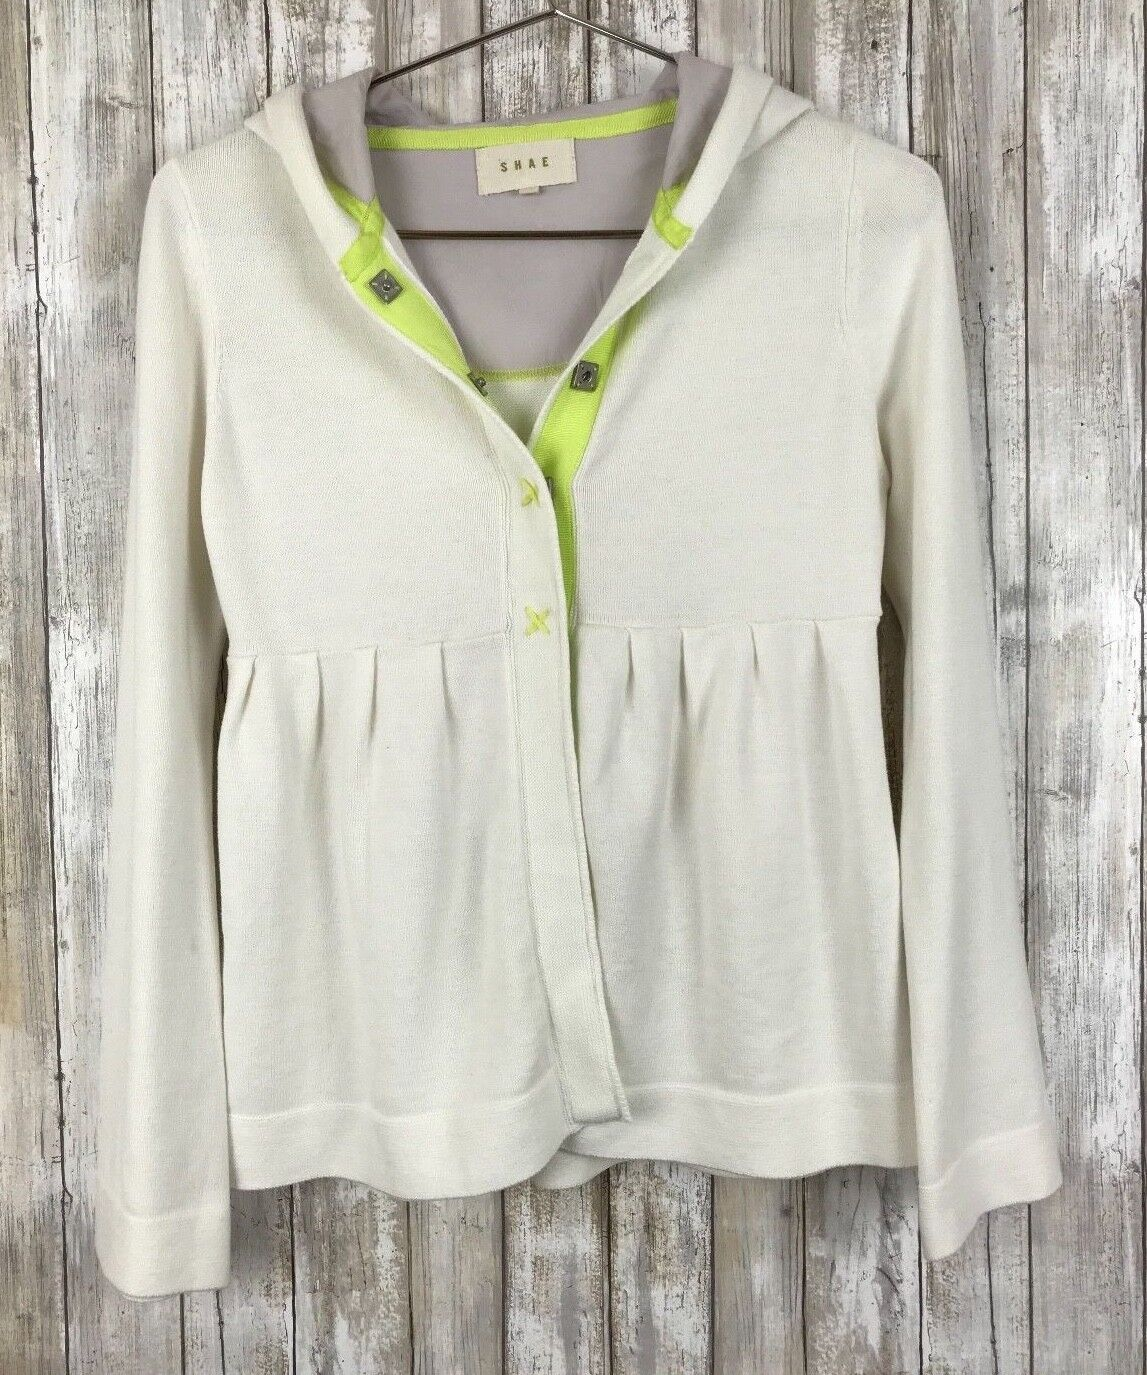 Anthropologie Shae Ivory Green Green Green Snap Closure Hooded Open Cardigan S Small 1ada2a